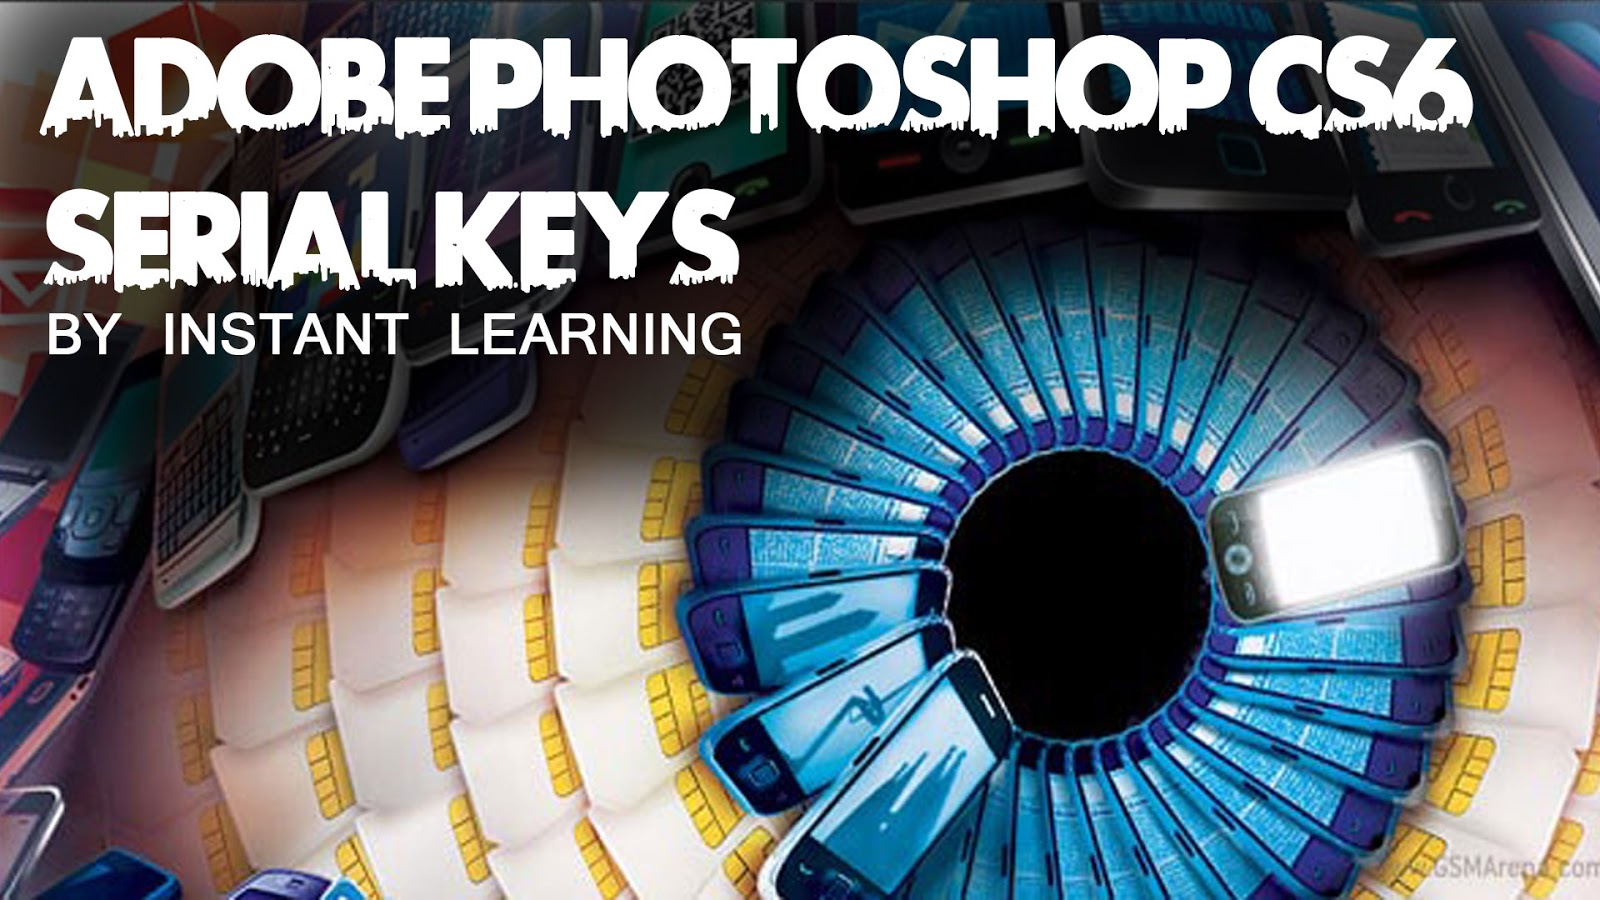 license key for adobe photoshop cs6